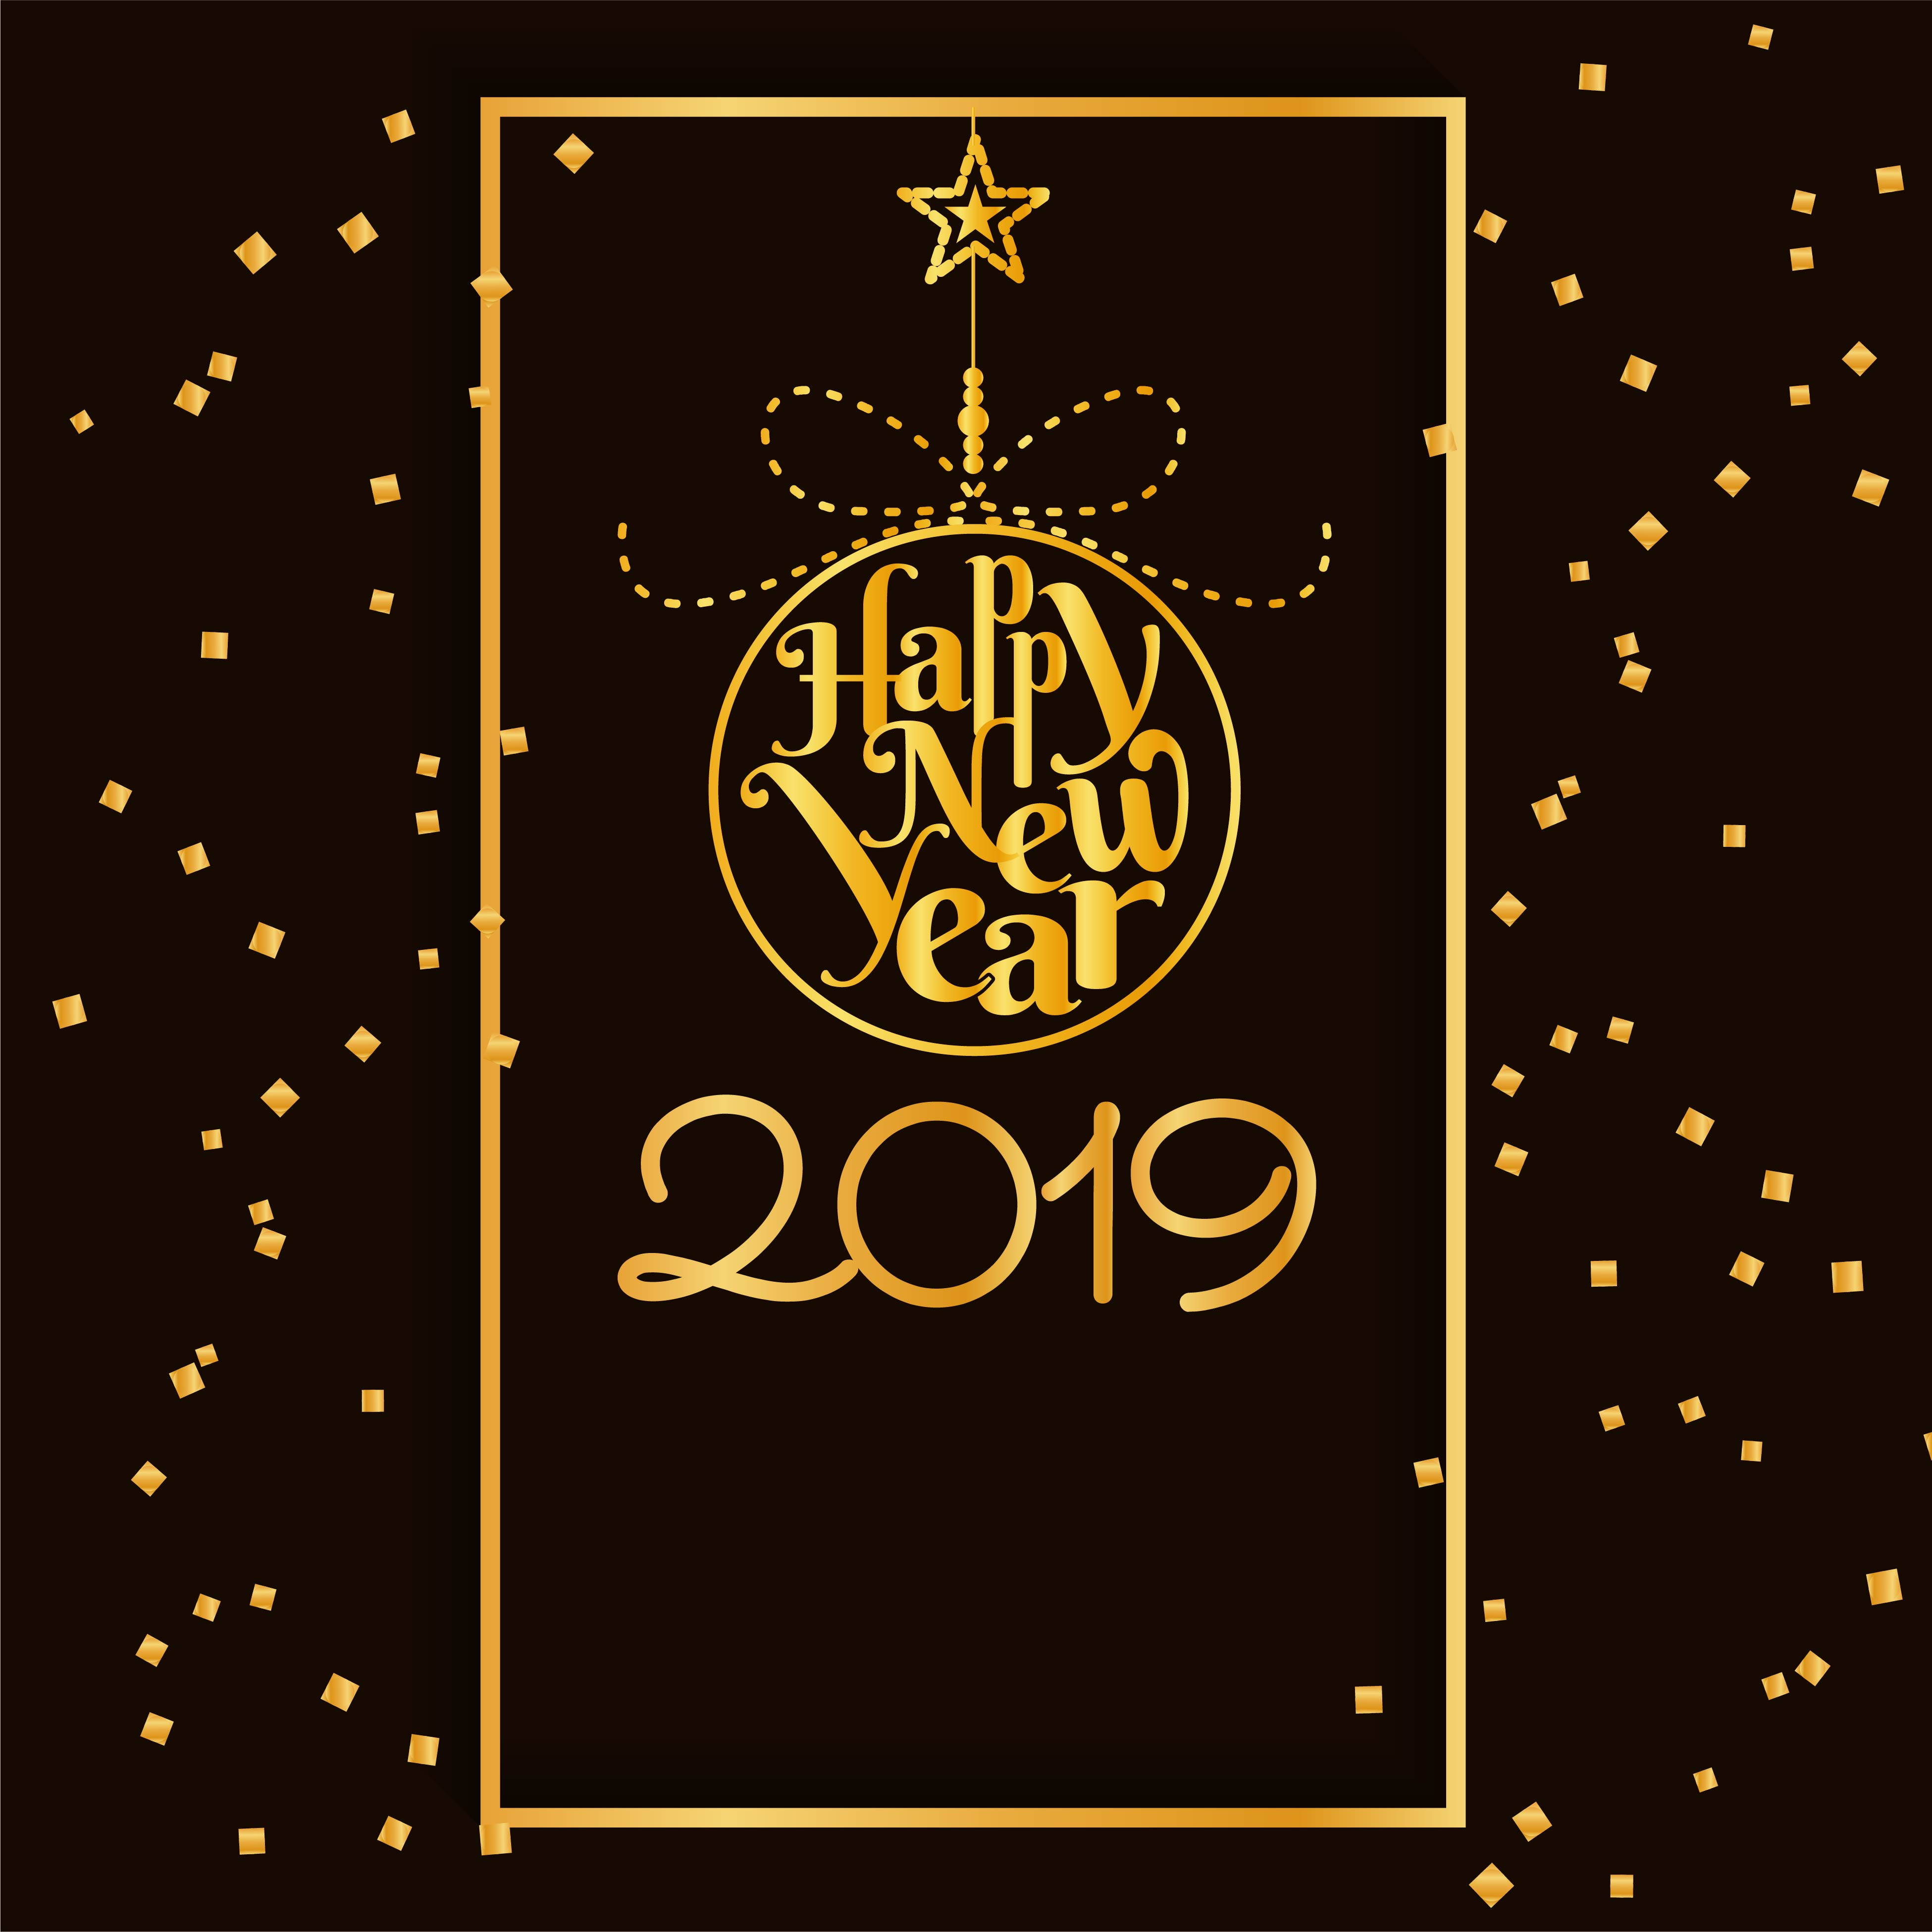 Happy New Year 2019 modern background - Download Free ...